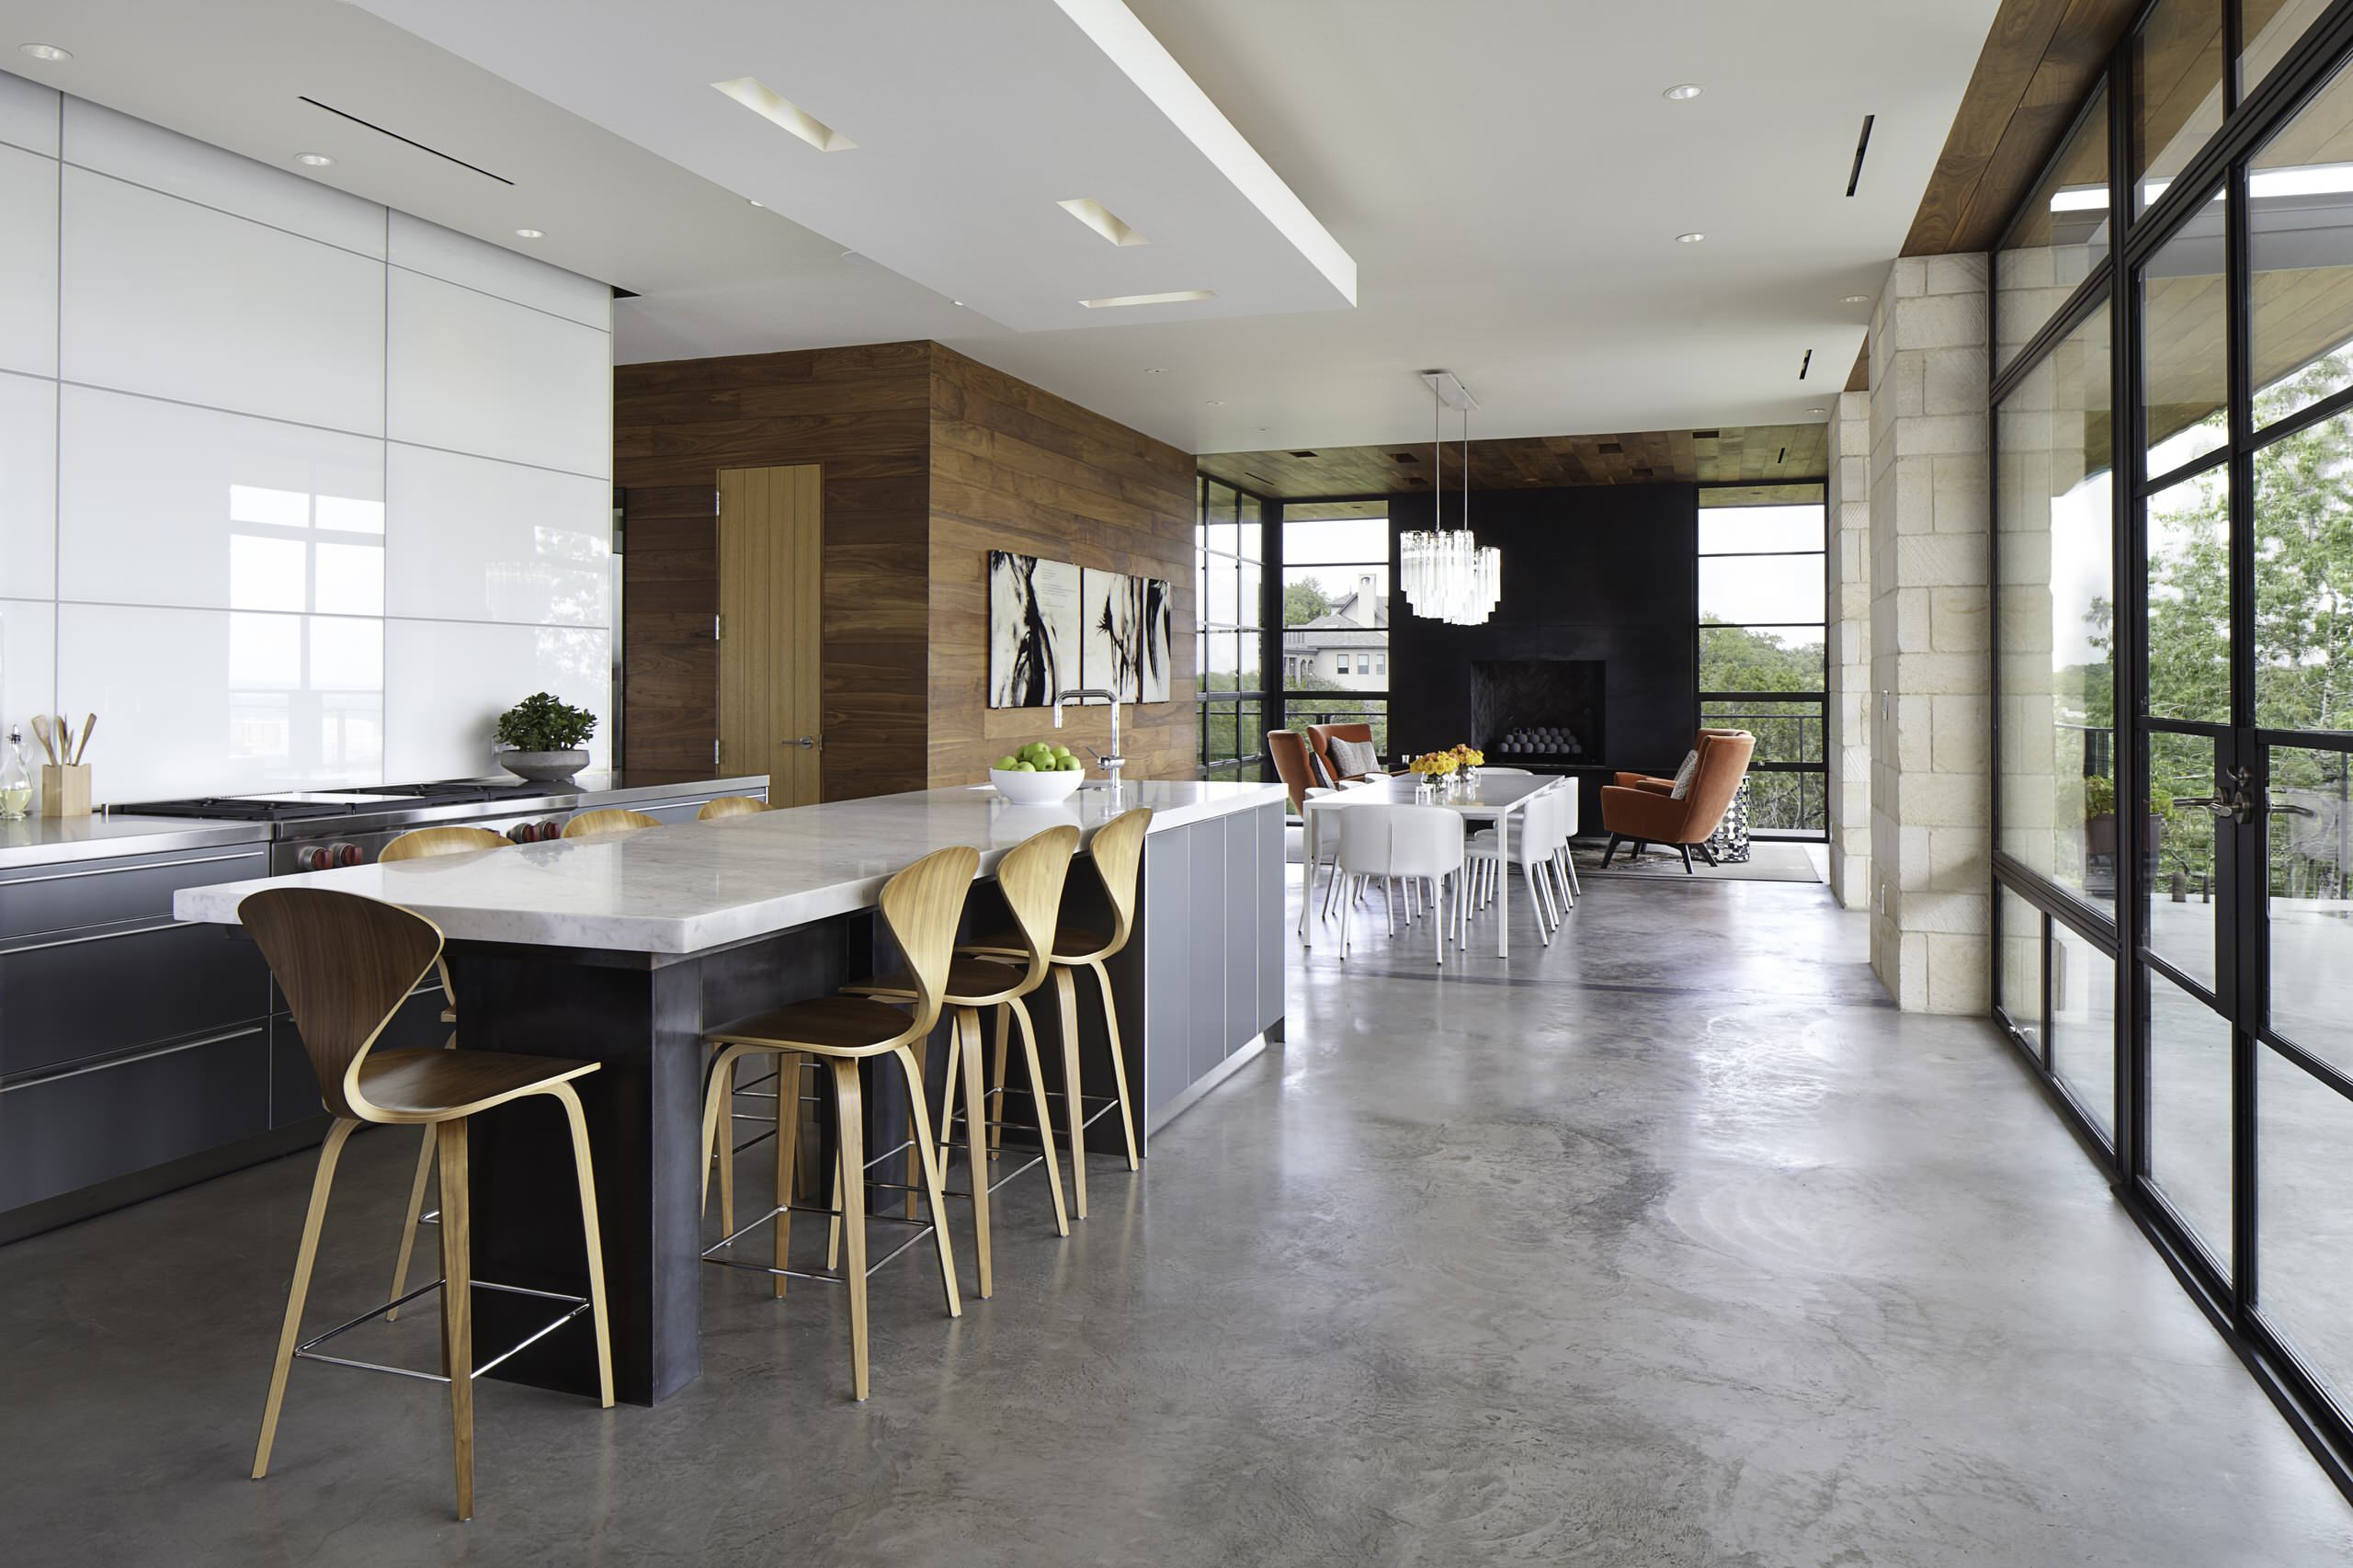 75 Beautiful Modern Galley Kitchen Pictures Ideas February 2021 Houzz